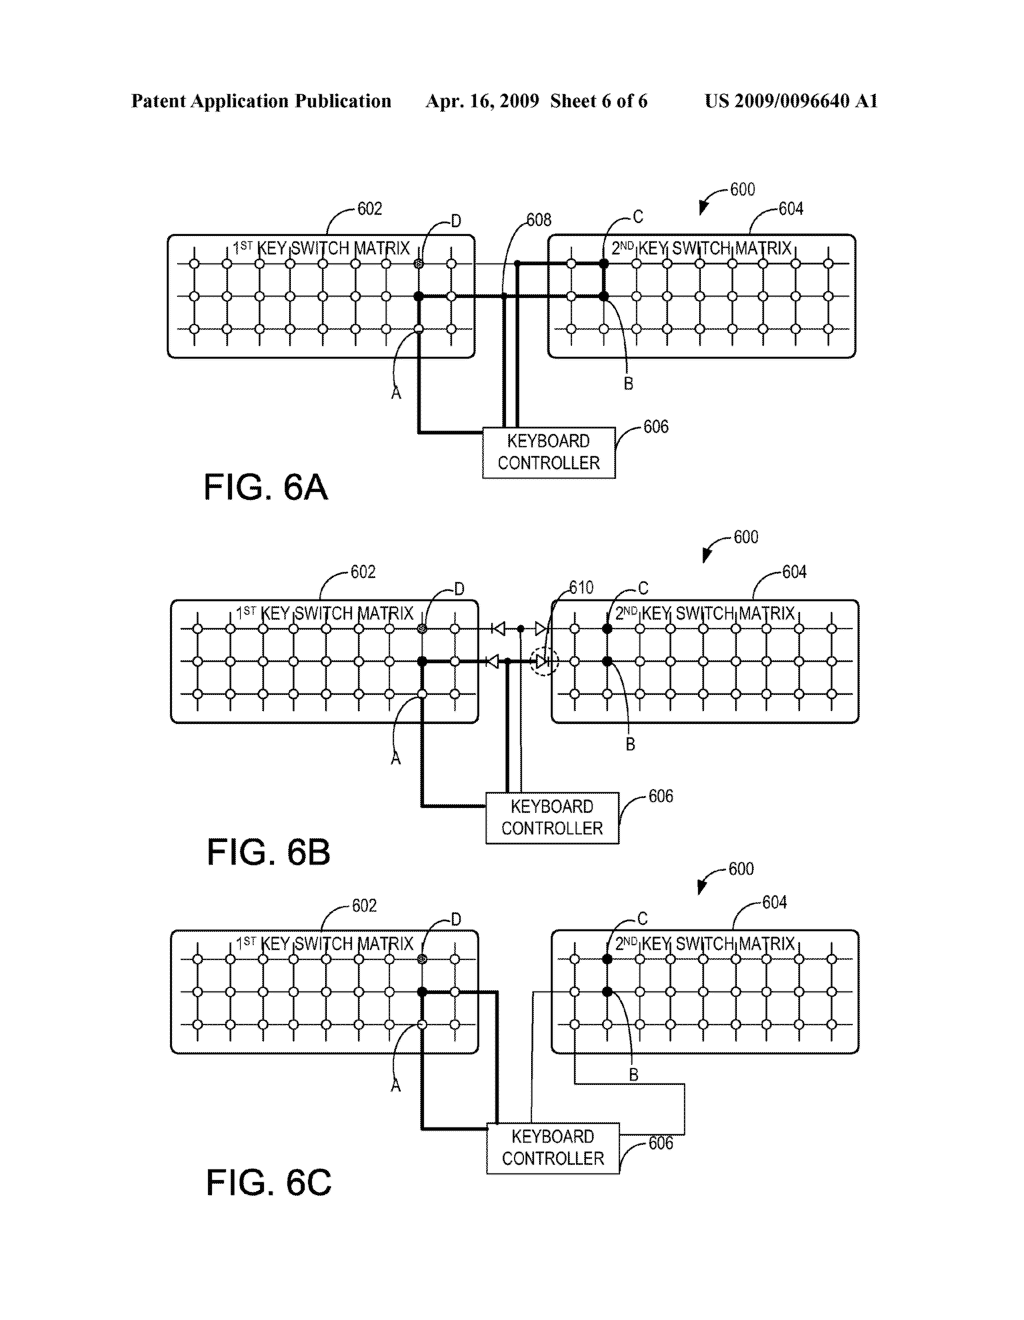 hight resolution of keyboard with plural key switch matrices to detect ghosting diagram schematic and image 07